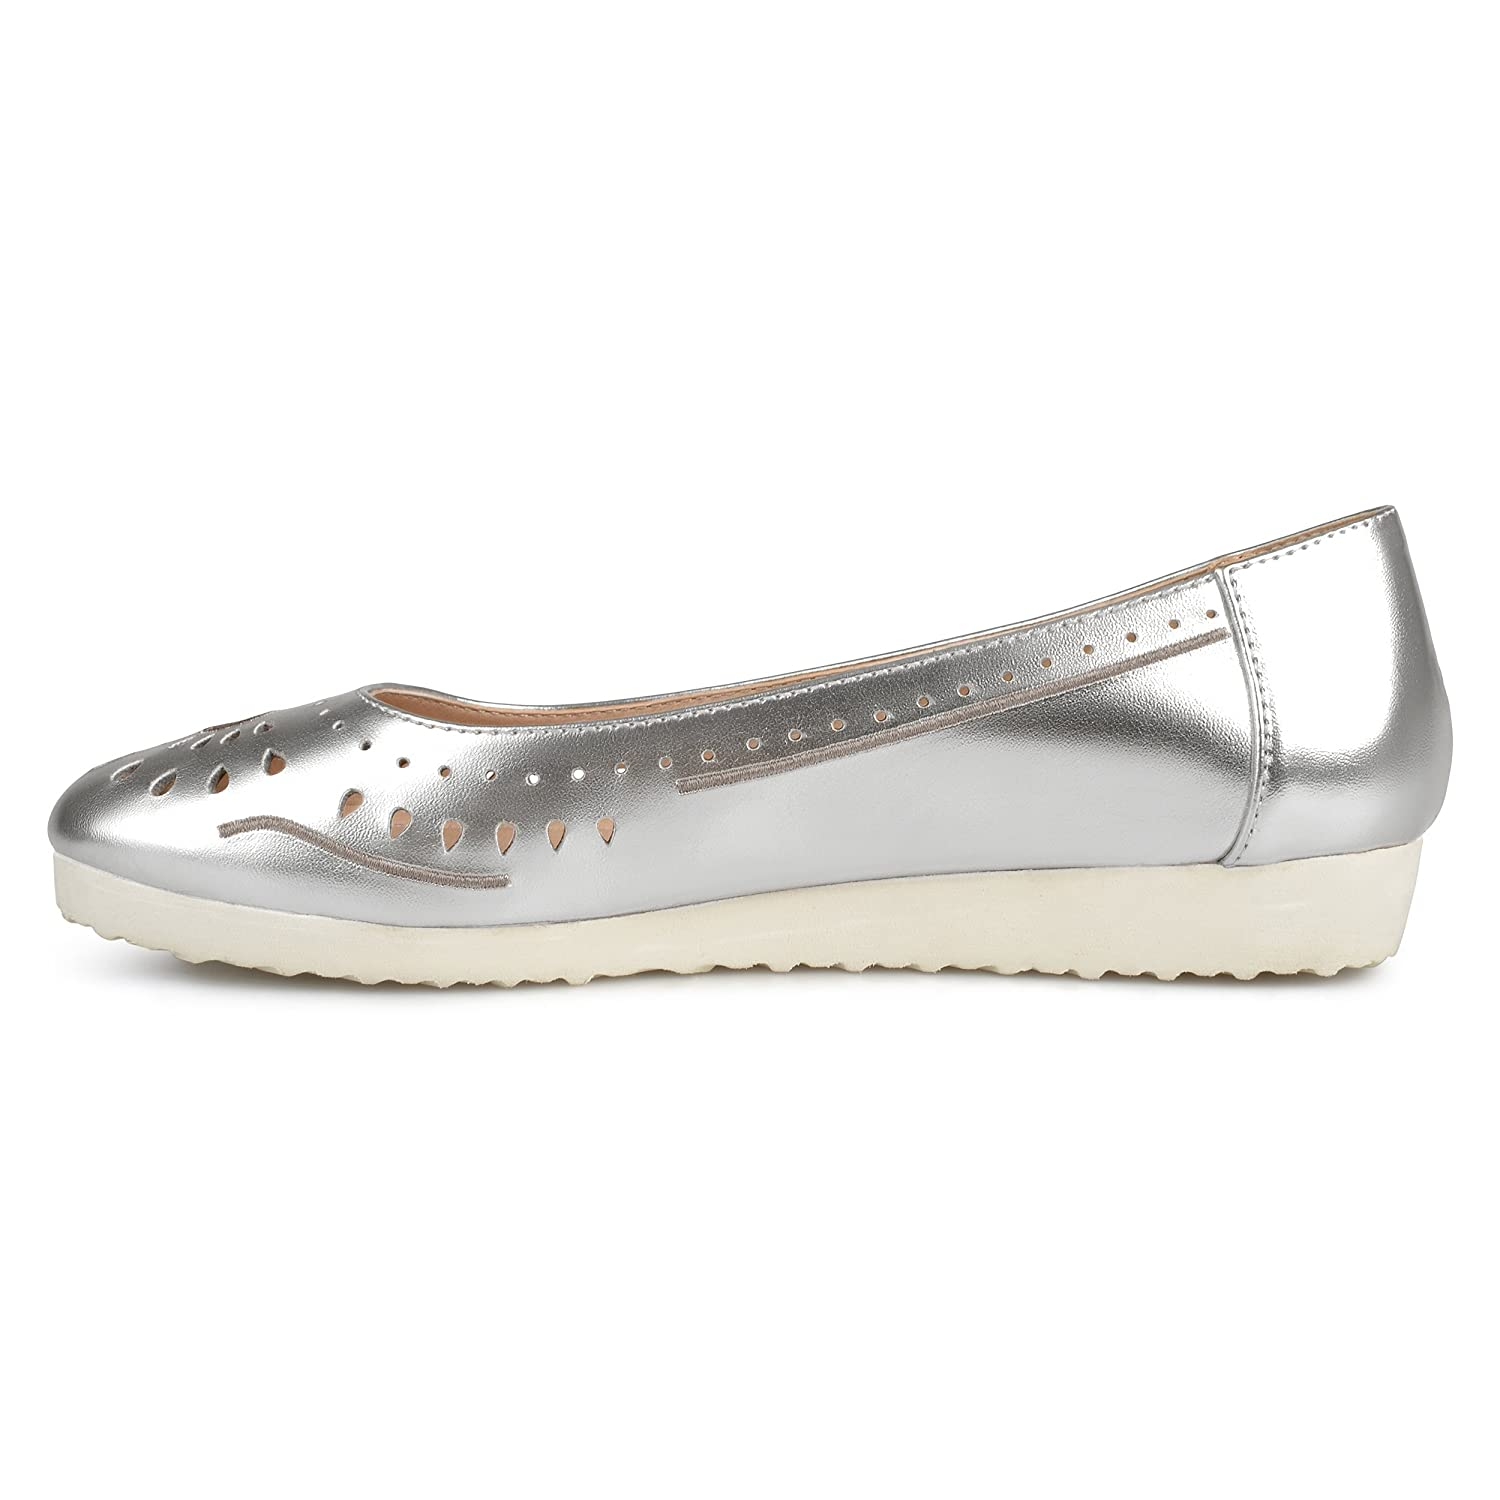 Brinley Co Womens Cyra Faux Leather Laser-Cut Comfort-Sole Embroidered Lightweight Flats B07572T5FR 5.5 B(M) US|Silver